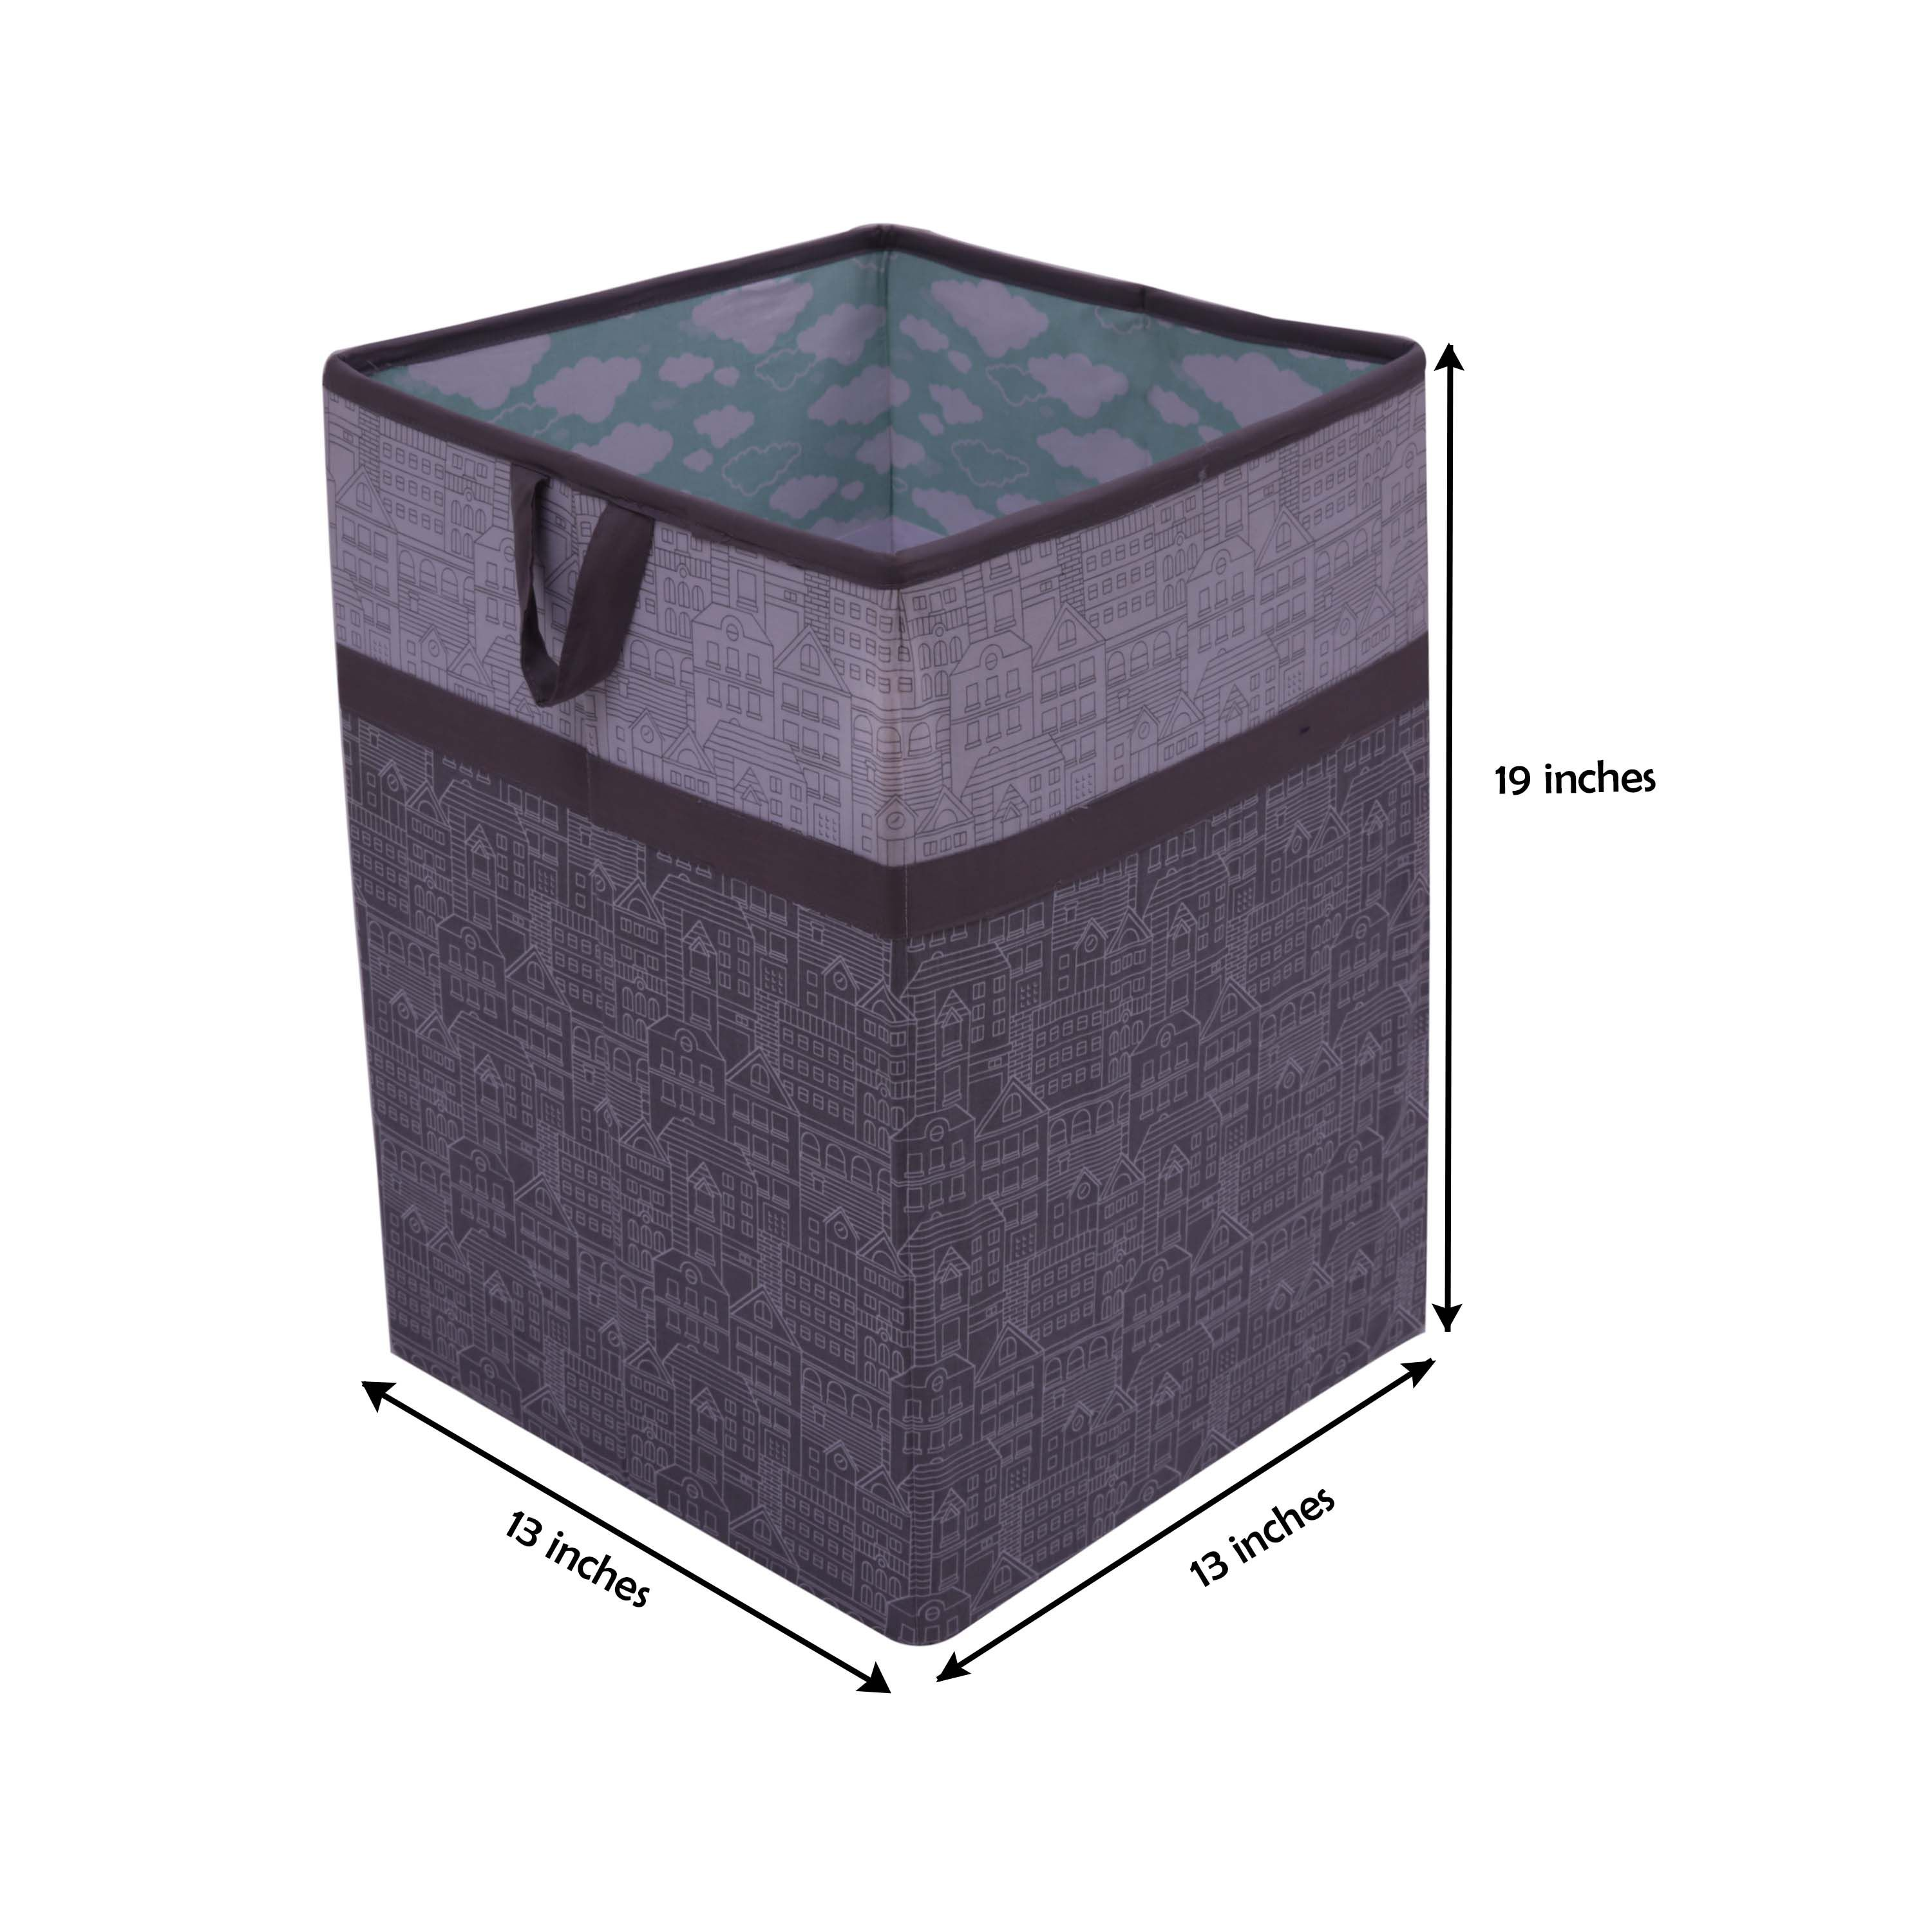 Bacati - Clouds in the City Neutral Nursery Kids Storage Items, Mint/Grey - Collapsible Laundry Hamper